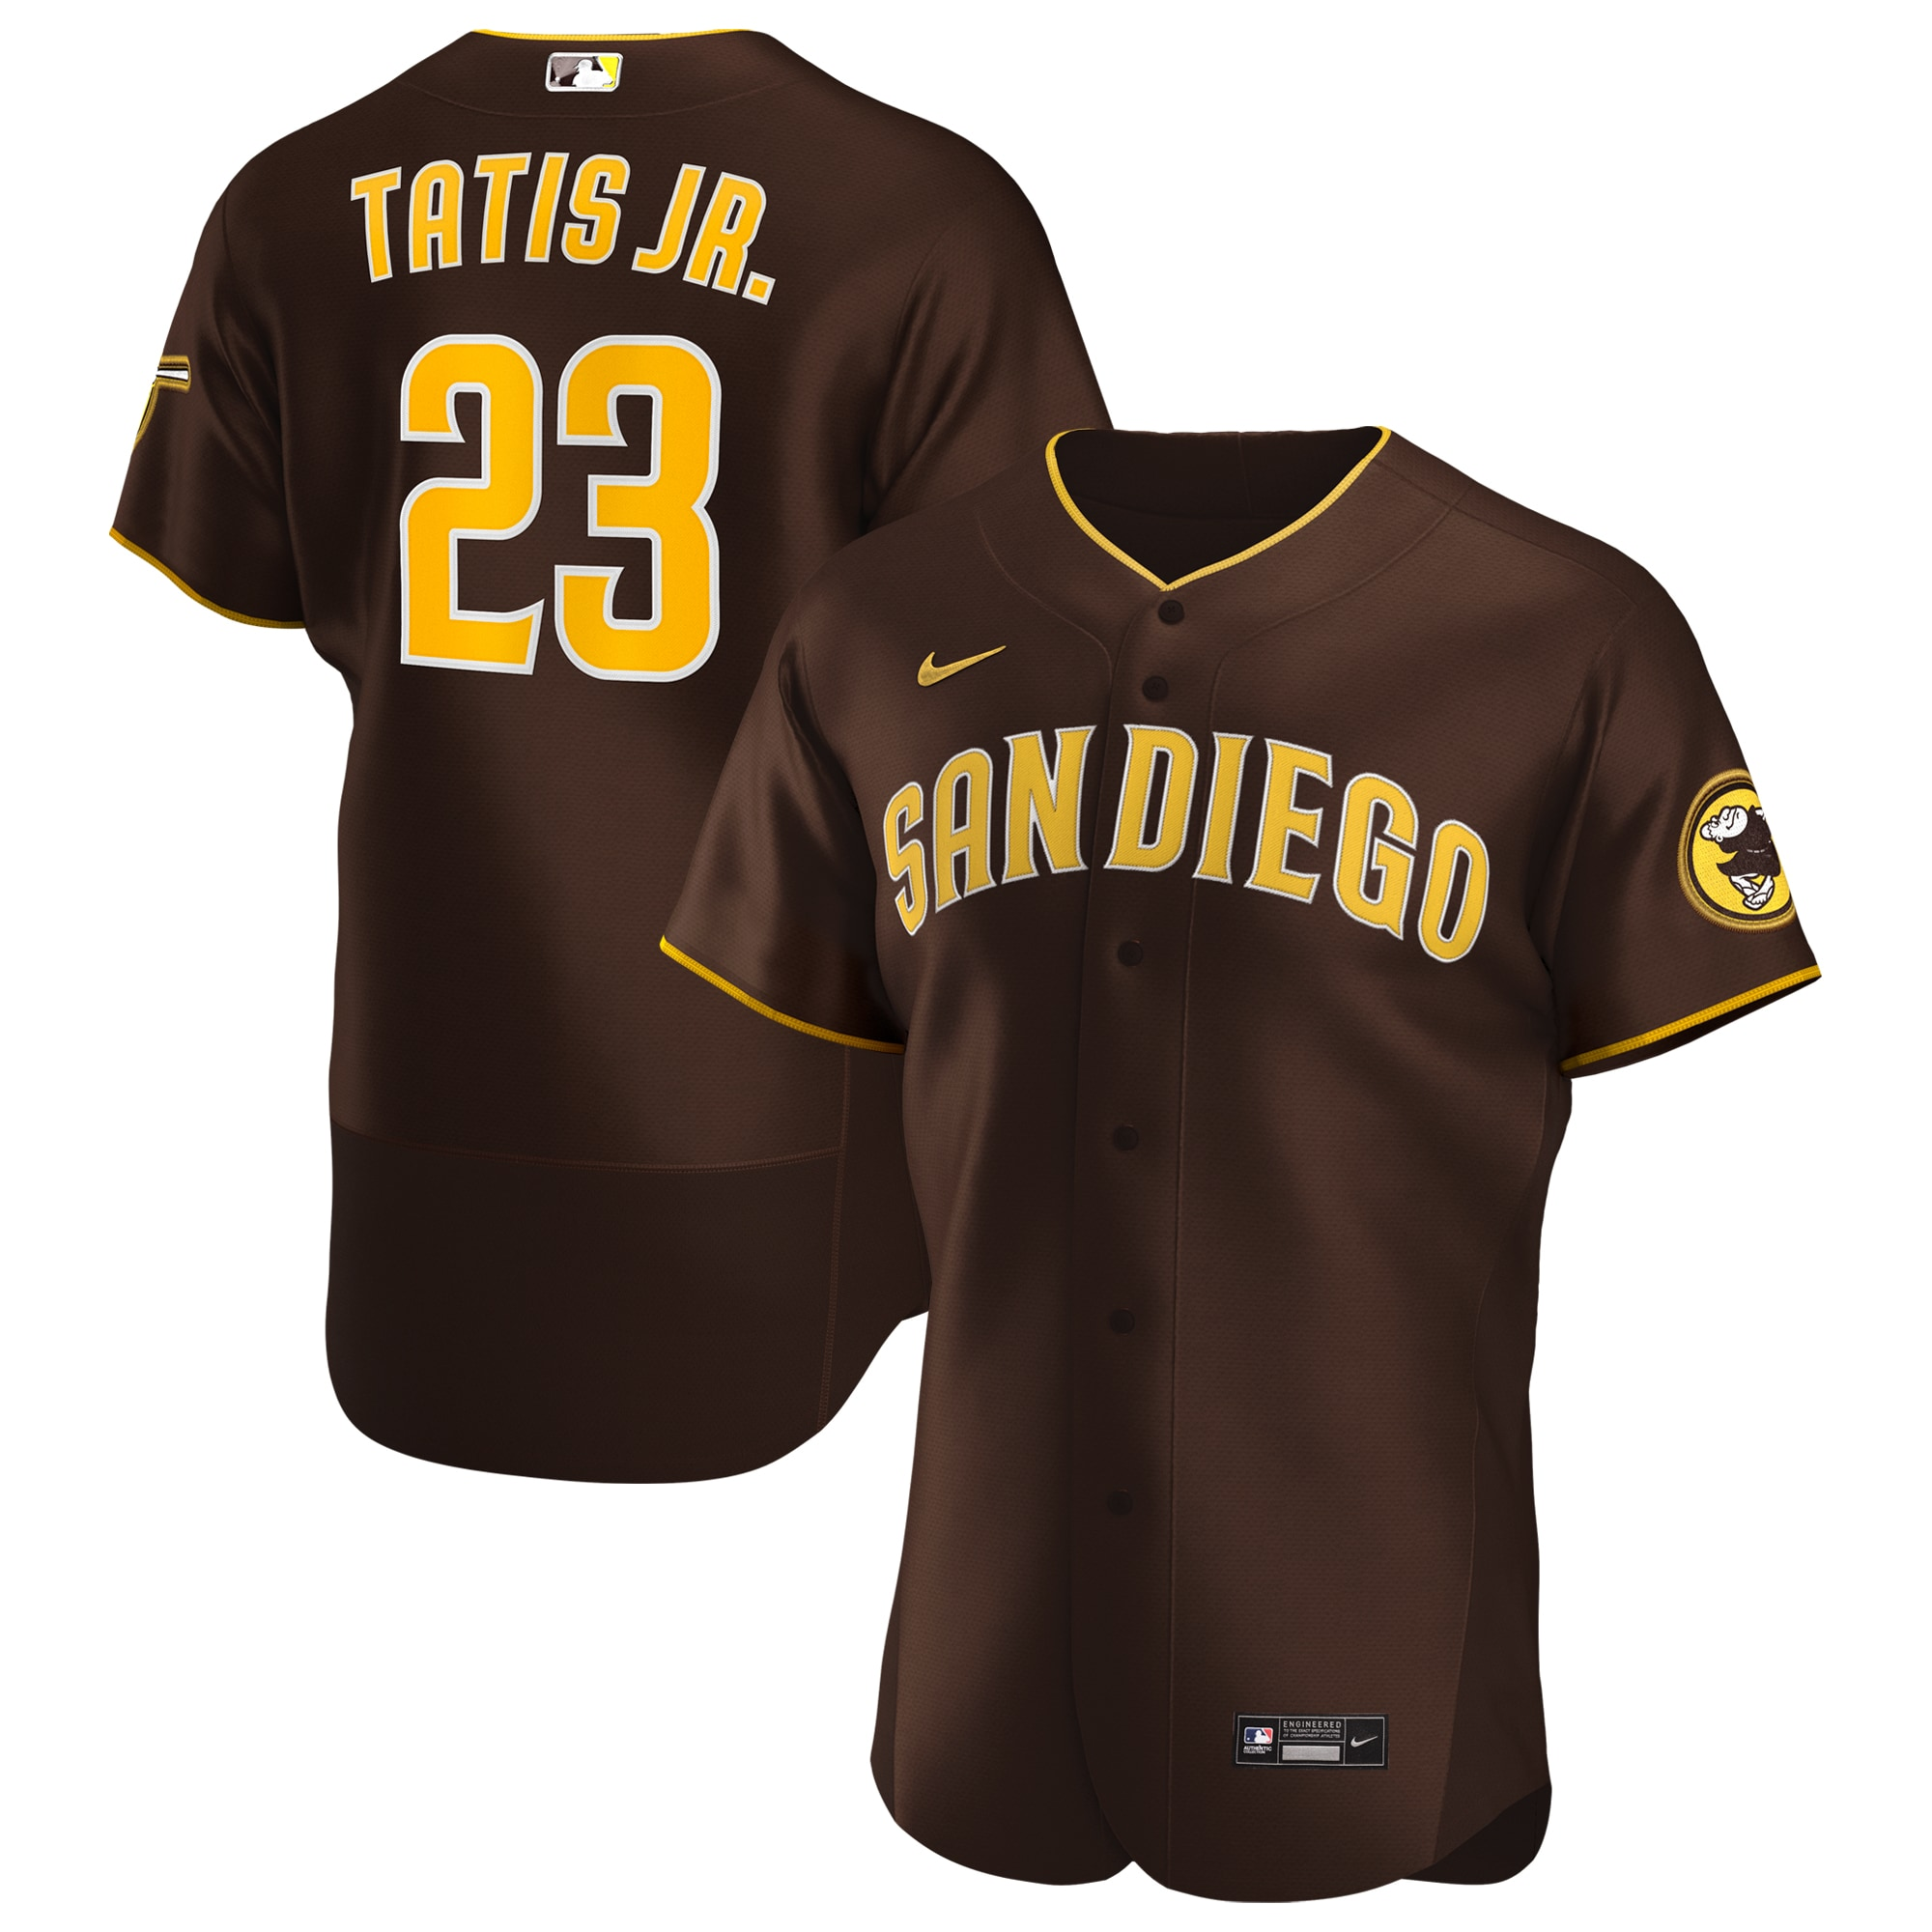 Fernando Tatís Jr. San Diego Padres Nike Road 2020 Authentic Player Jersey - Brown